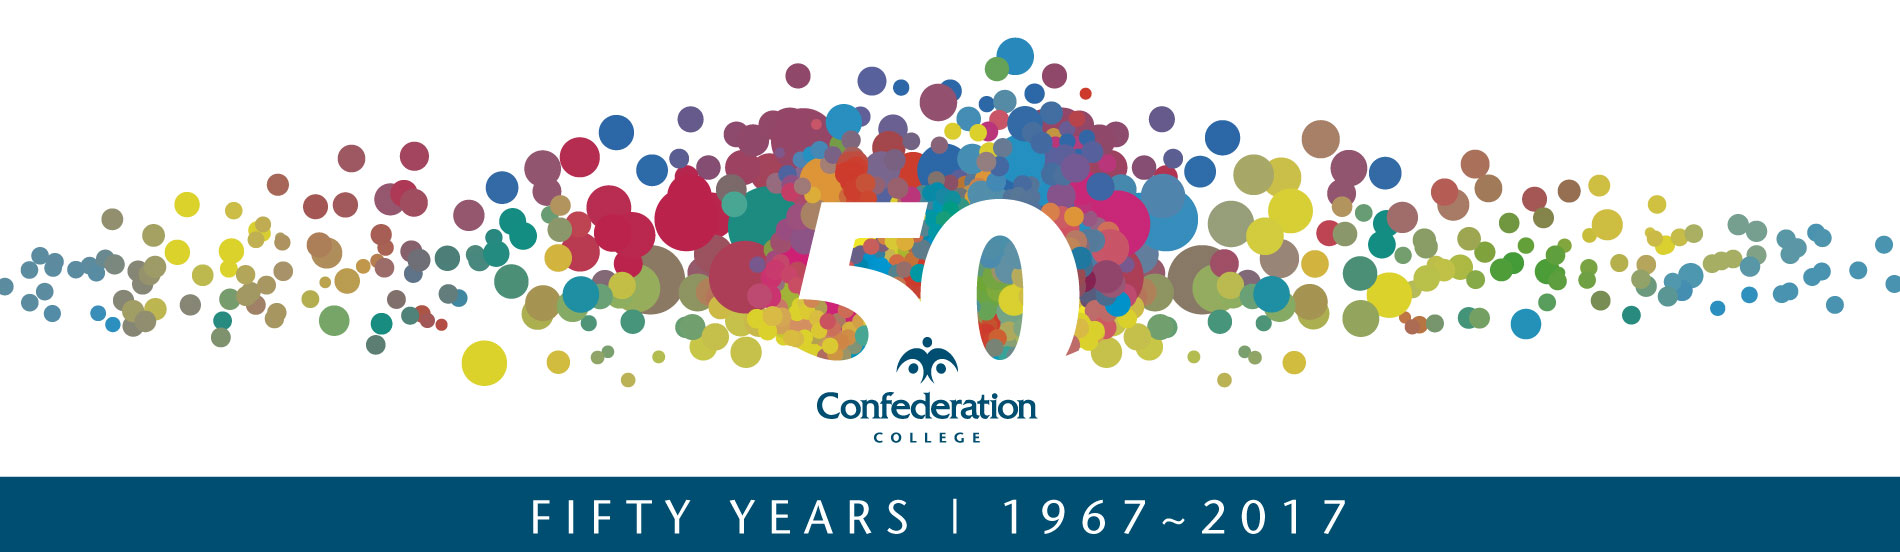 Confederation College Fifty Years